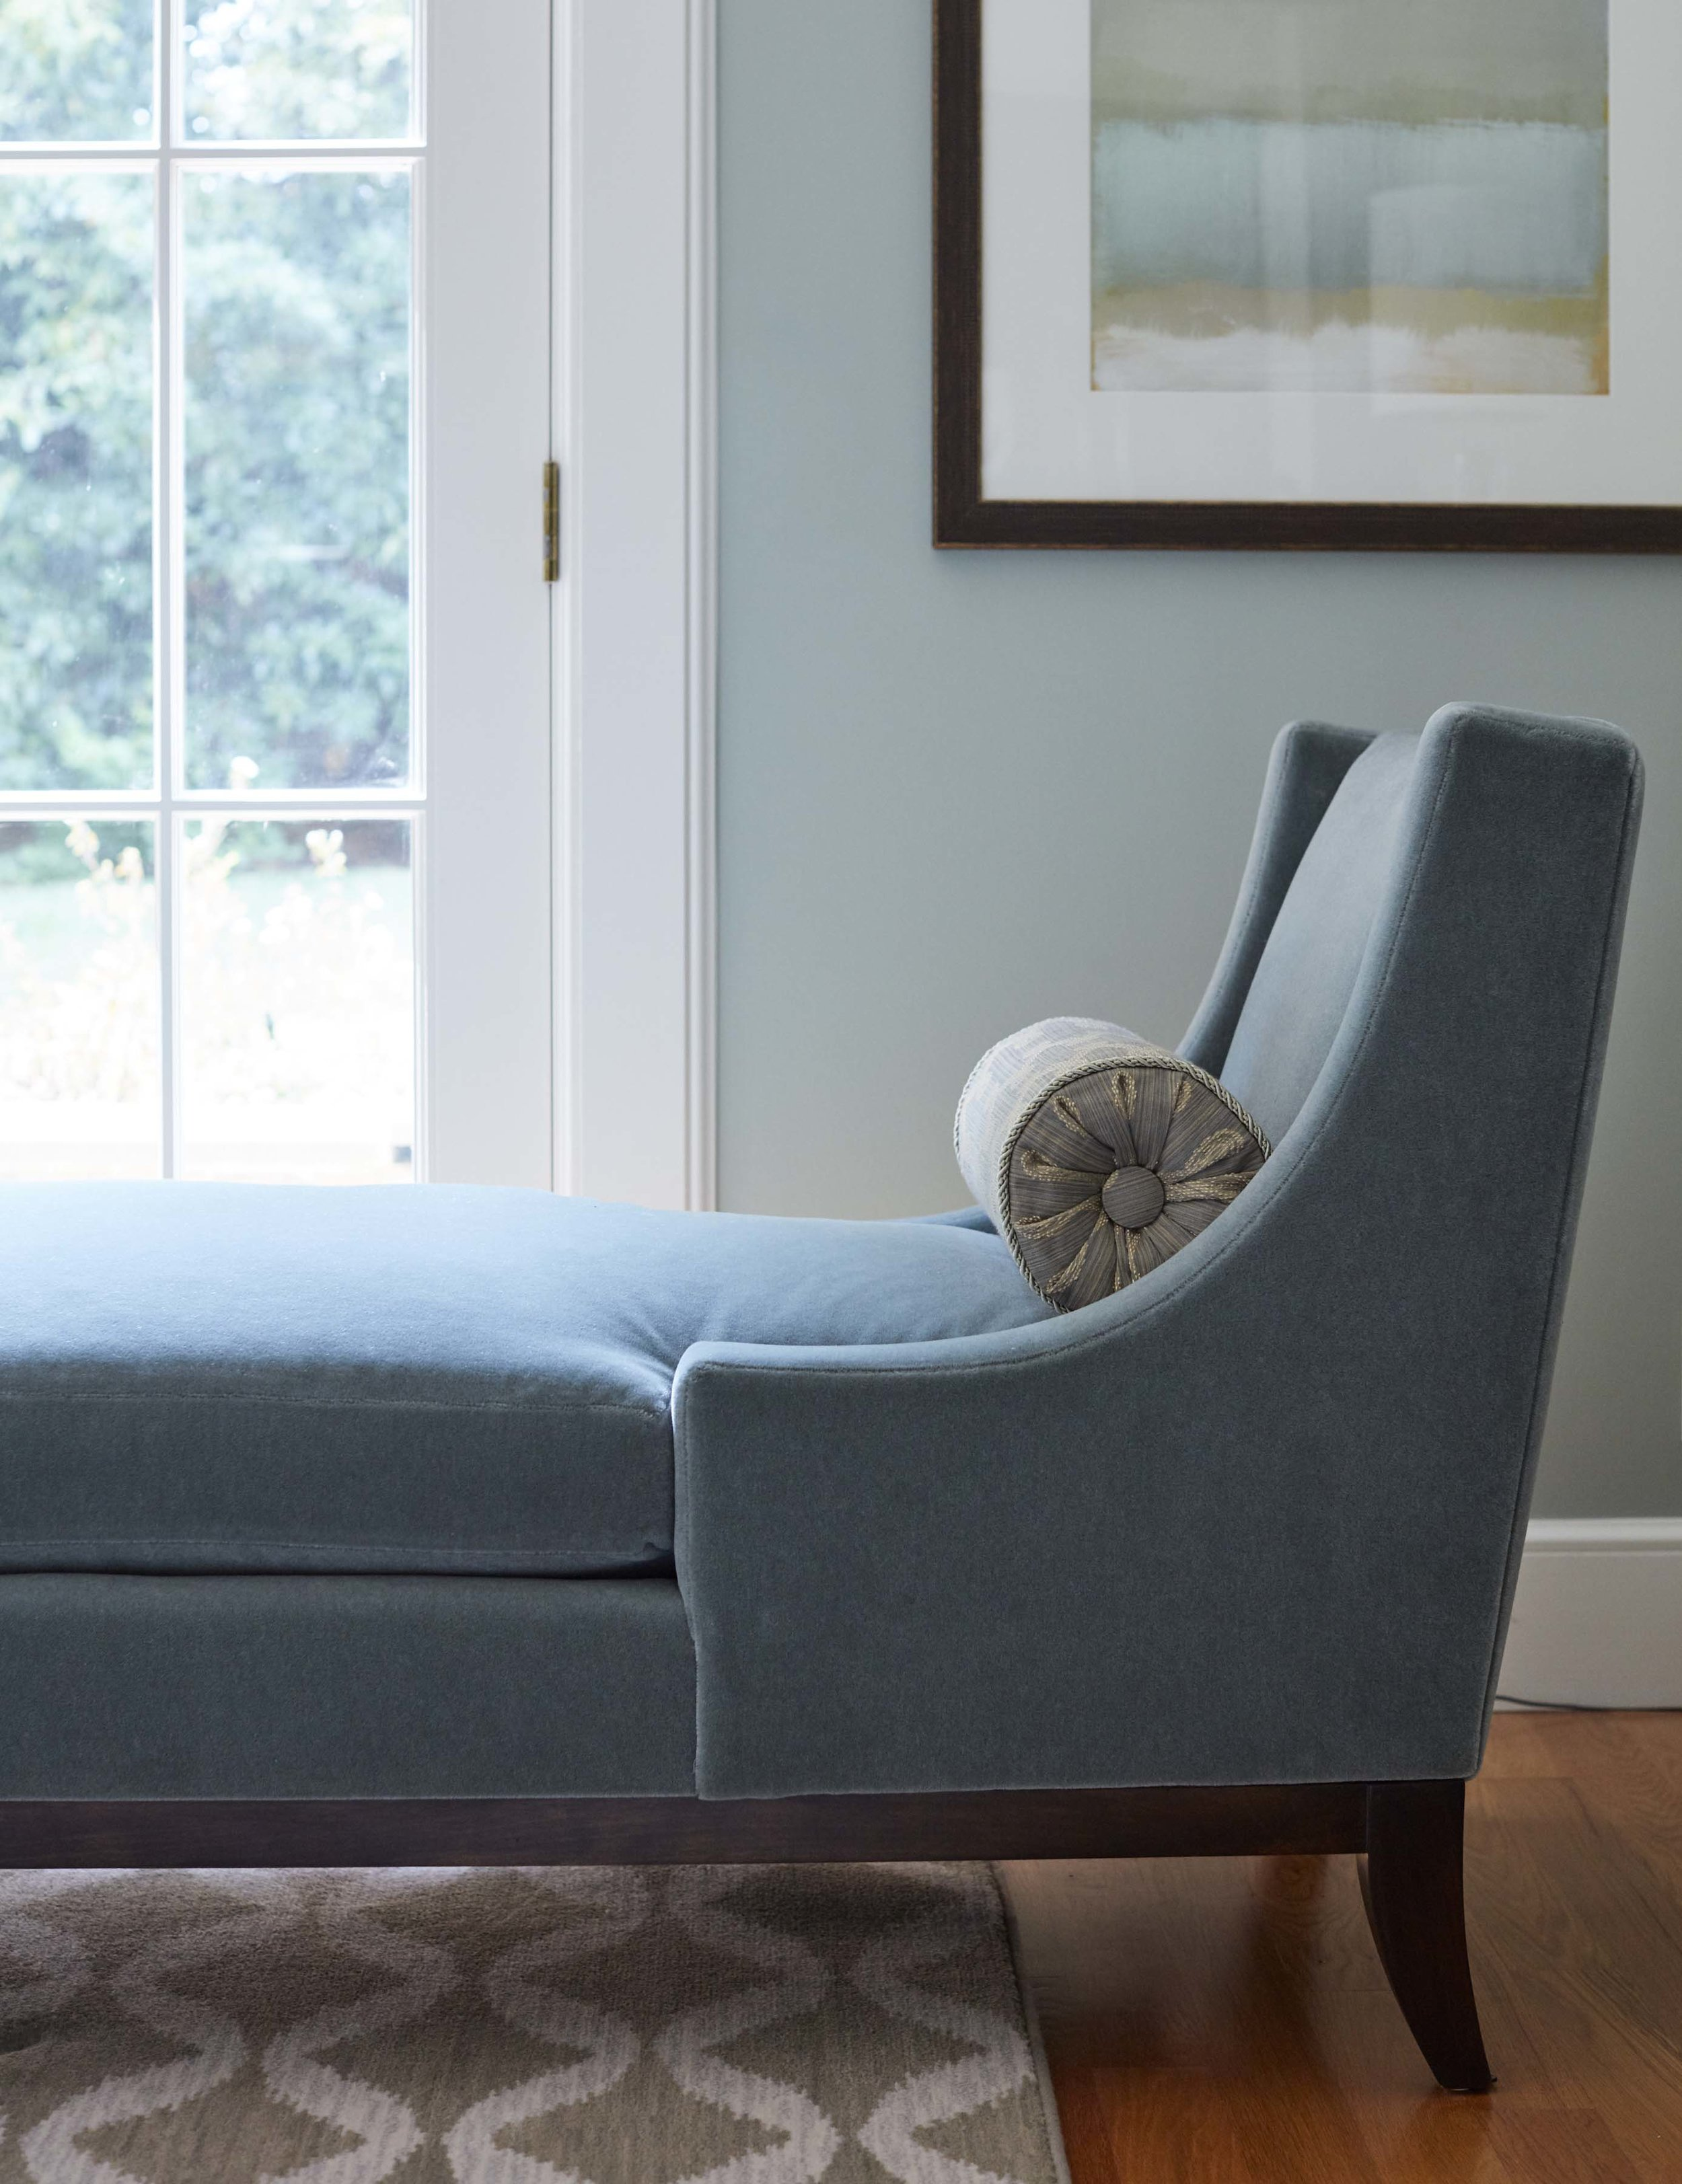 Who wouldn't want to stay and relax with a good book in this lovely blue-green chaise.